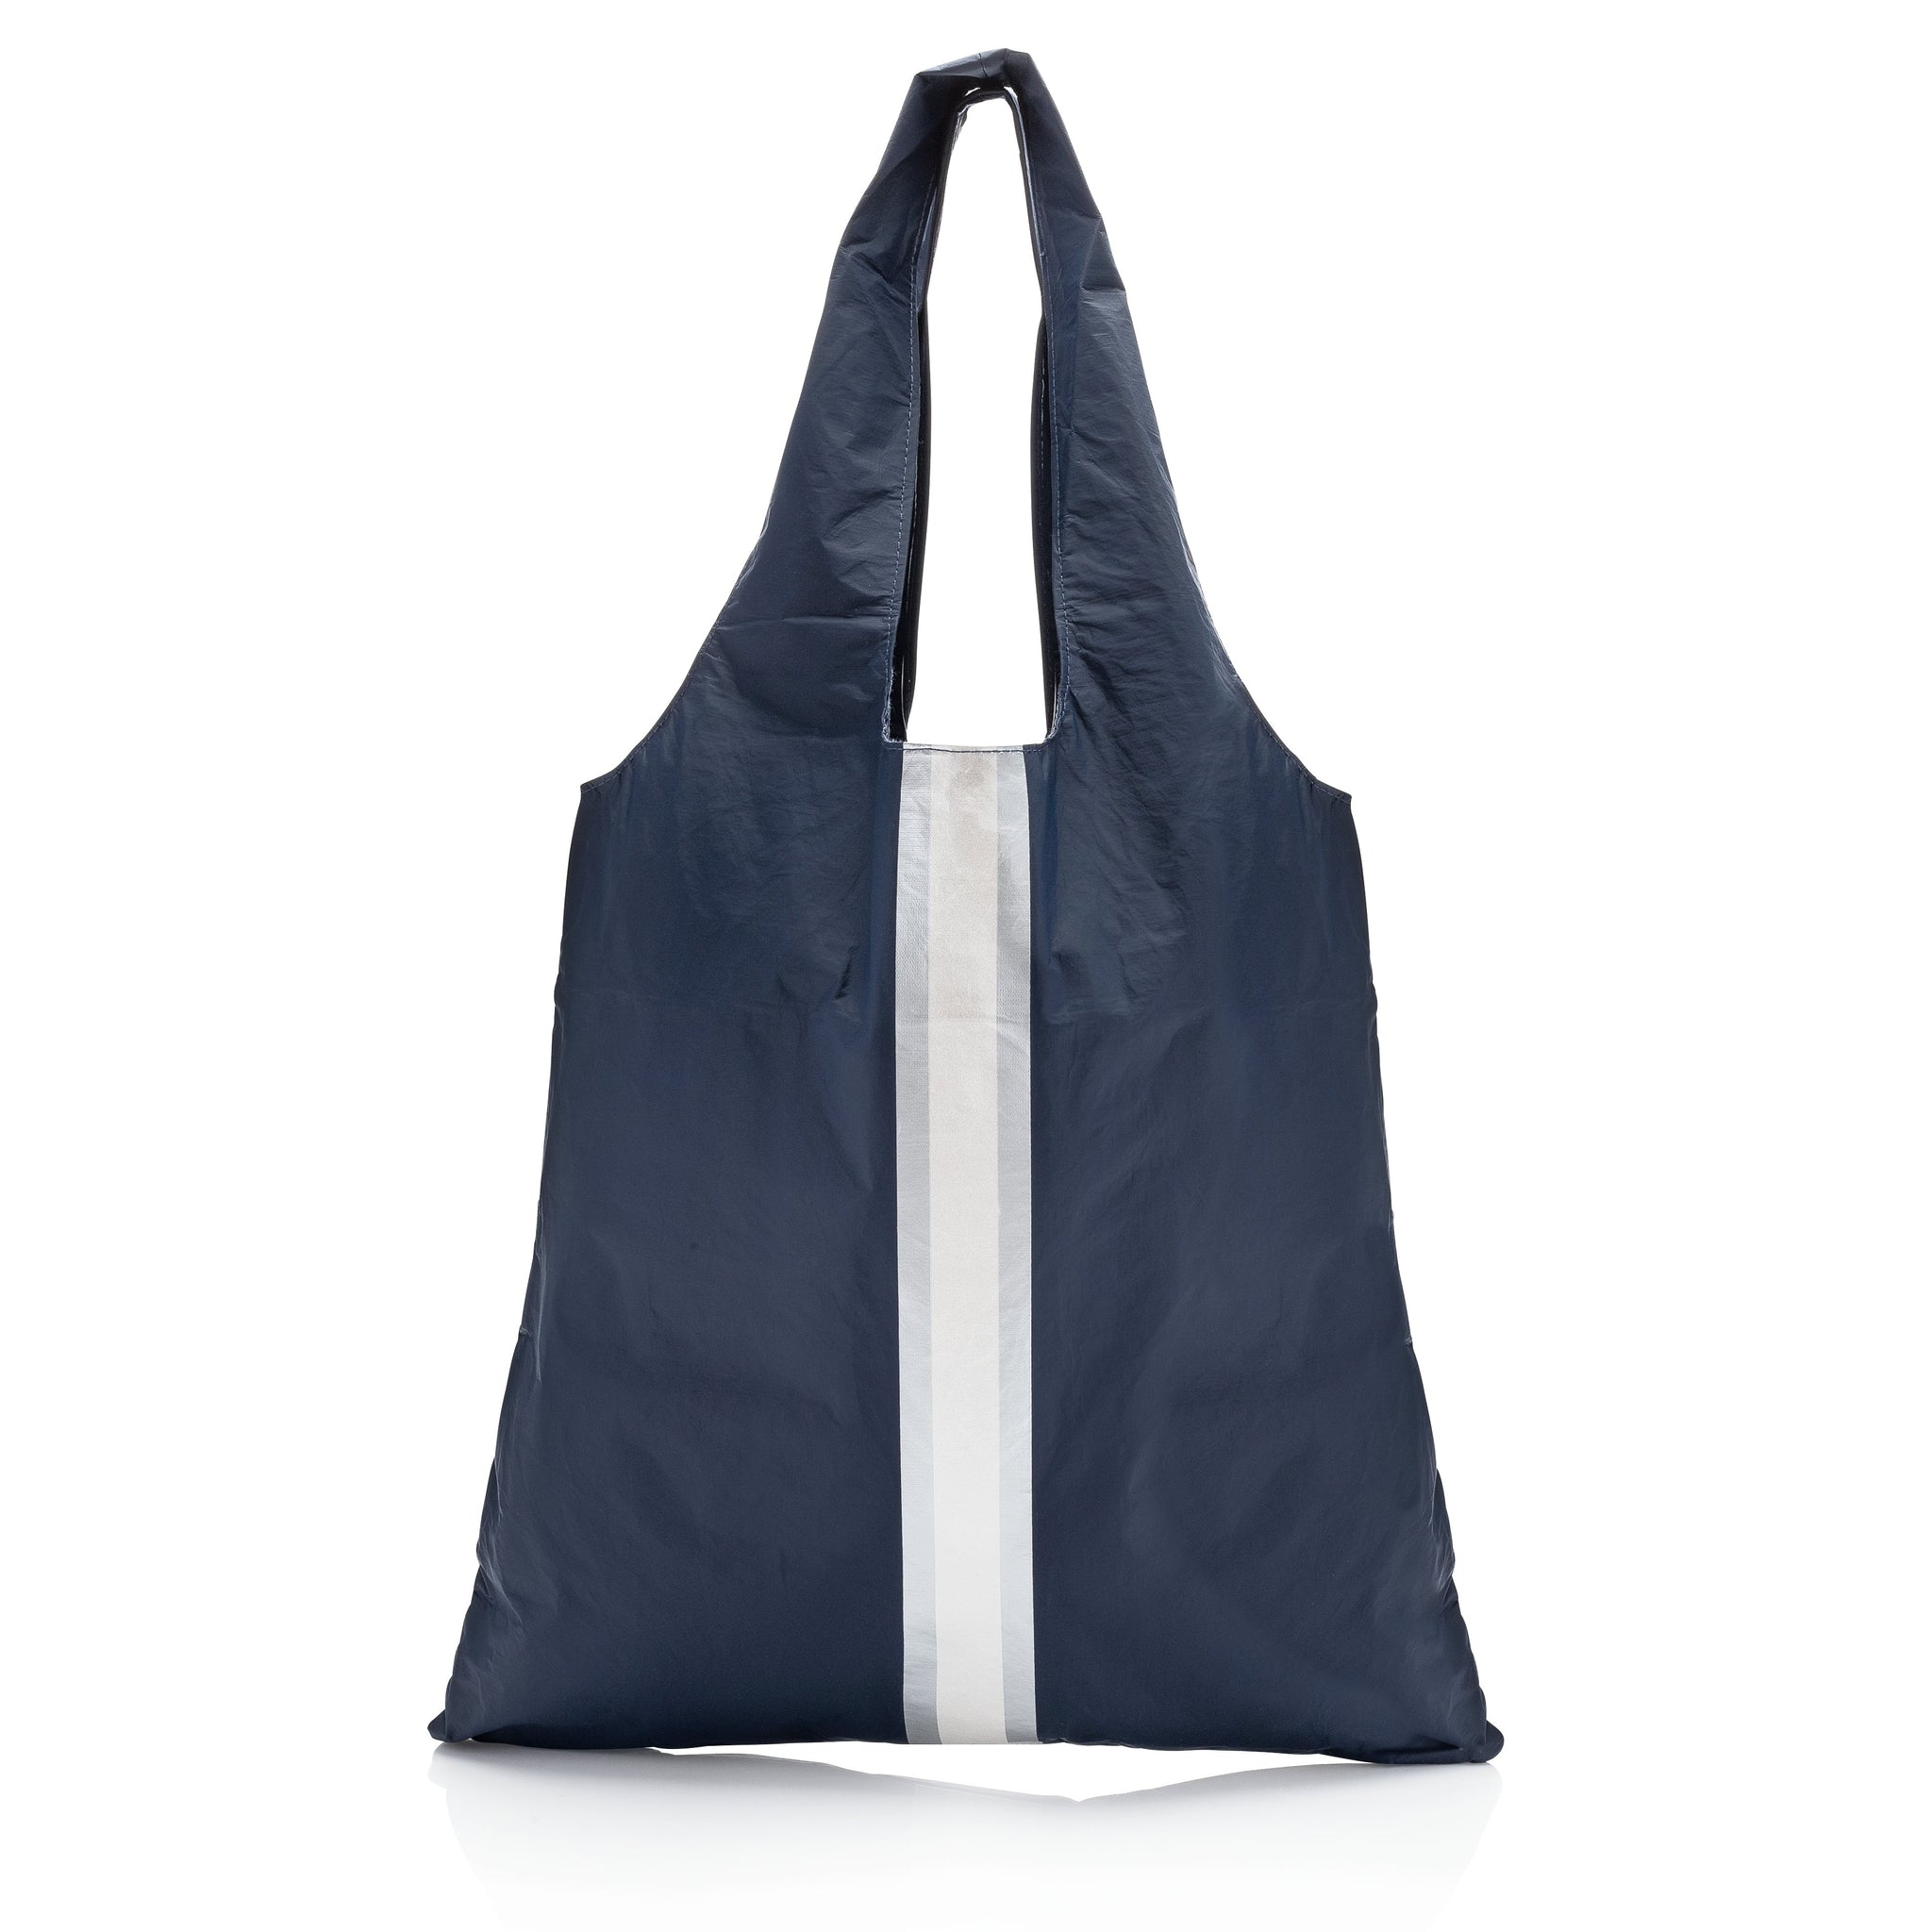 Carryall Tote - Navy HLT Collection with a Double Metallic Line